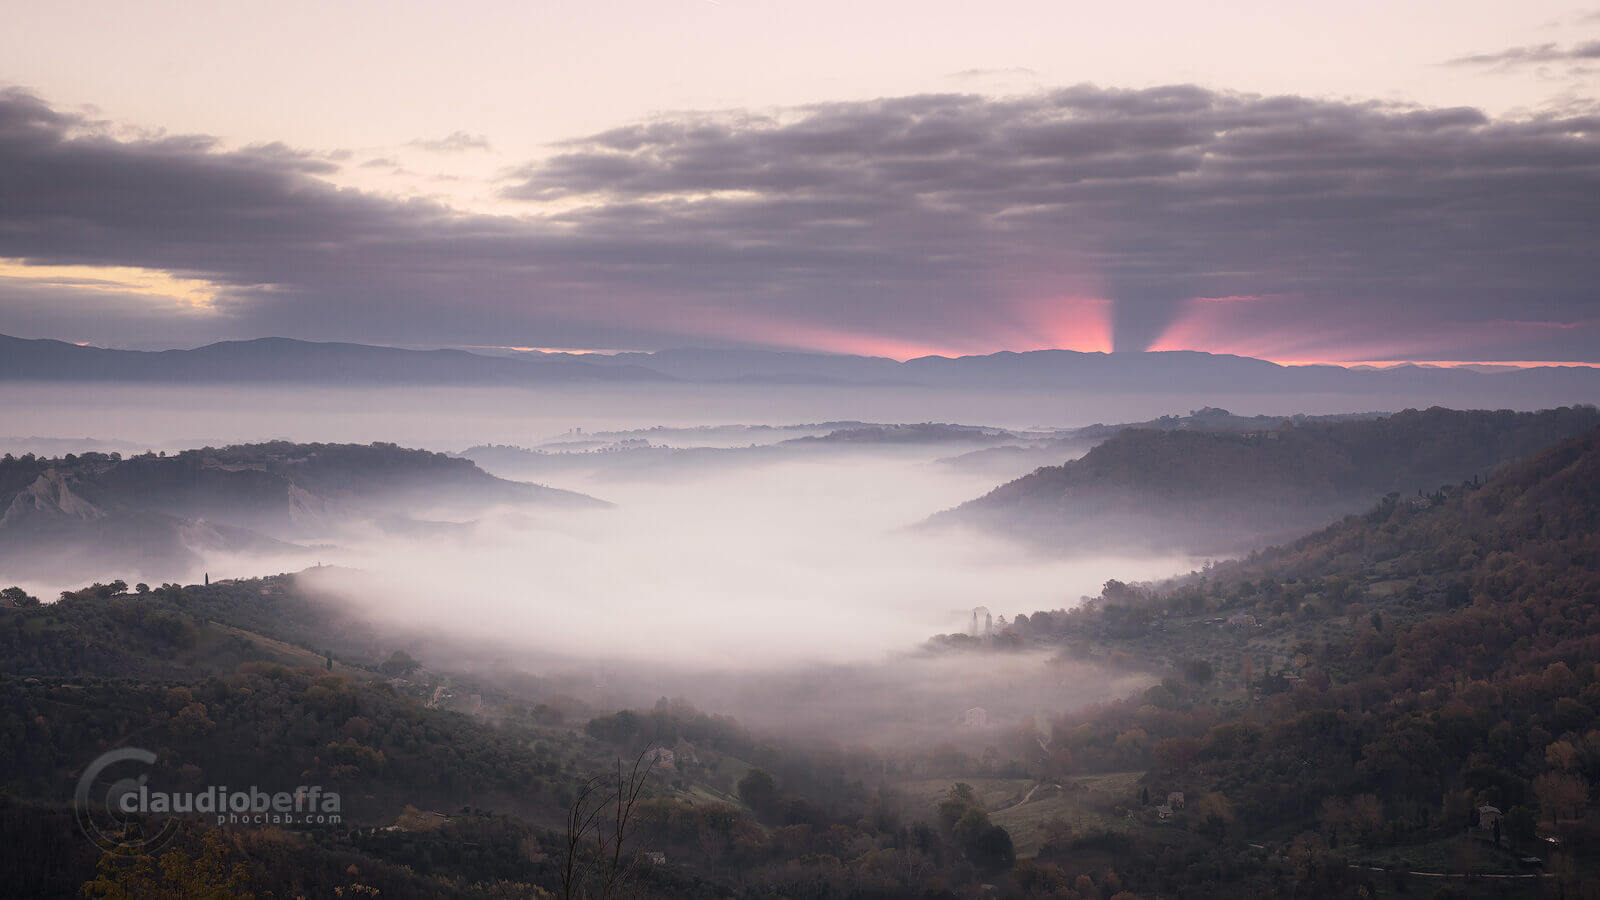 Sunrise, Fire and mist, Civita di Bagnoregio, Dying town, Italy, Mist, Fog, Valley, Badlands, Mountains, Forests, Town, Clouds, Light, Rays